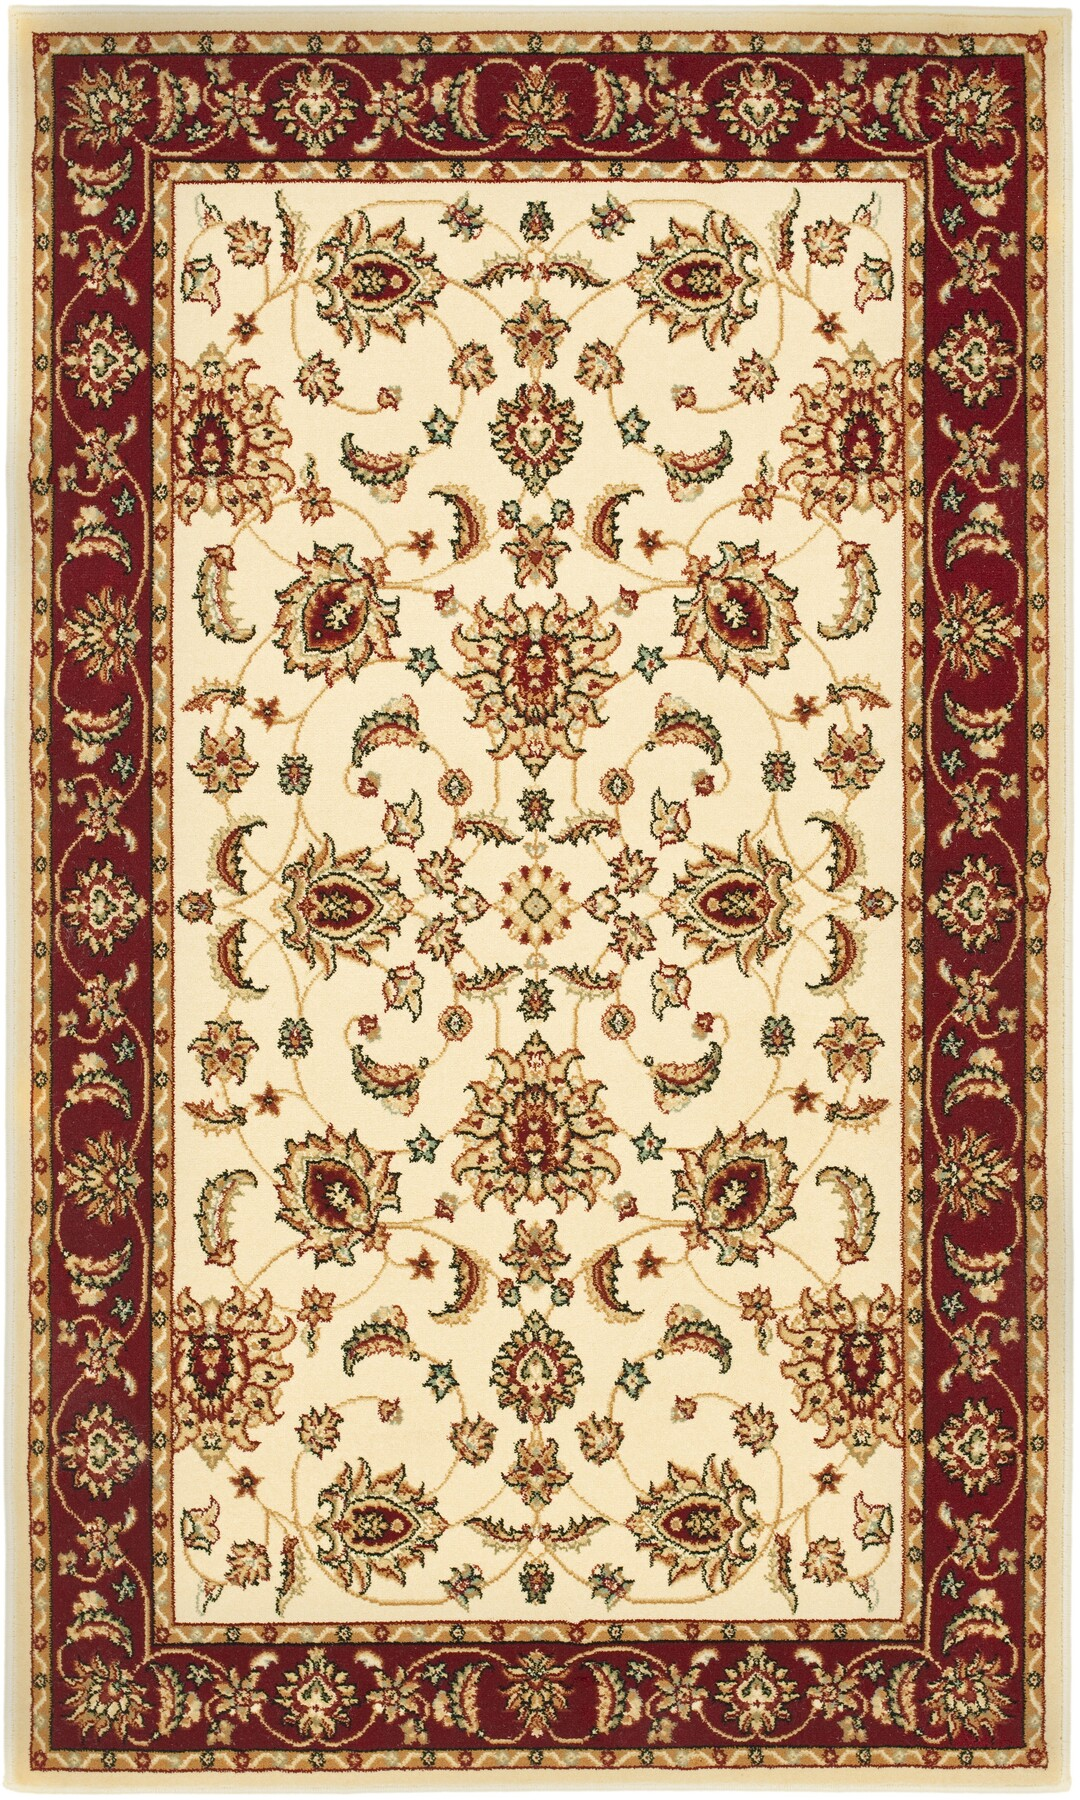 Rug Maj4781 1140 Lotus Floral Majesty Area Rugs By Safavieh